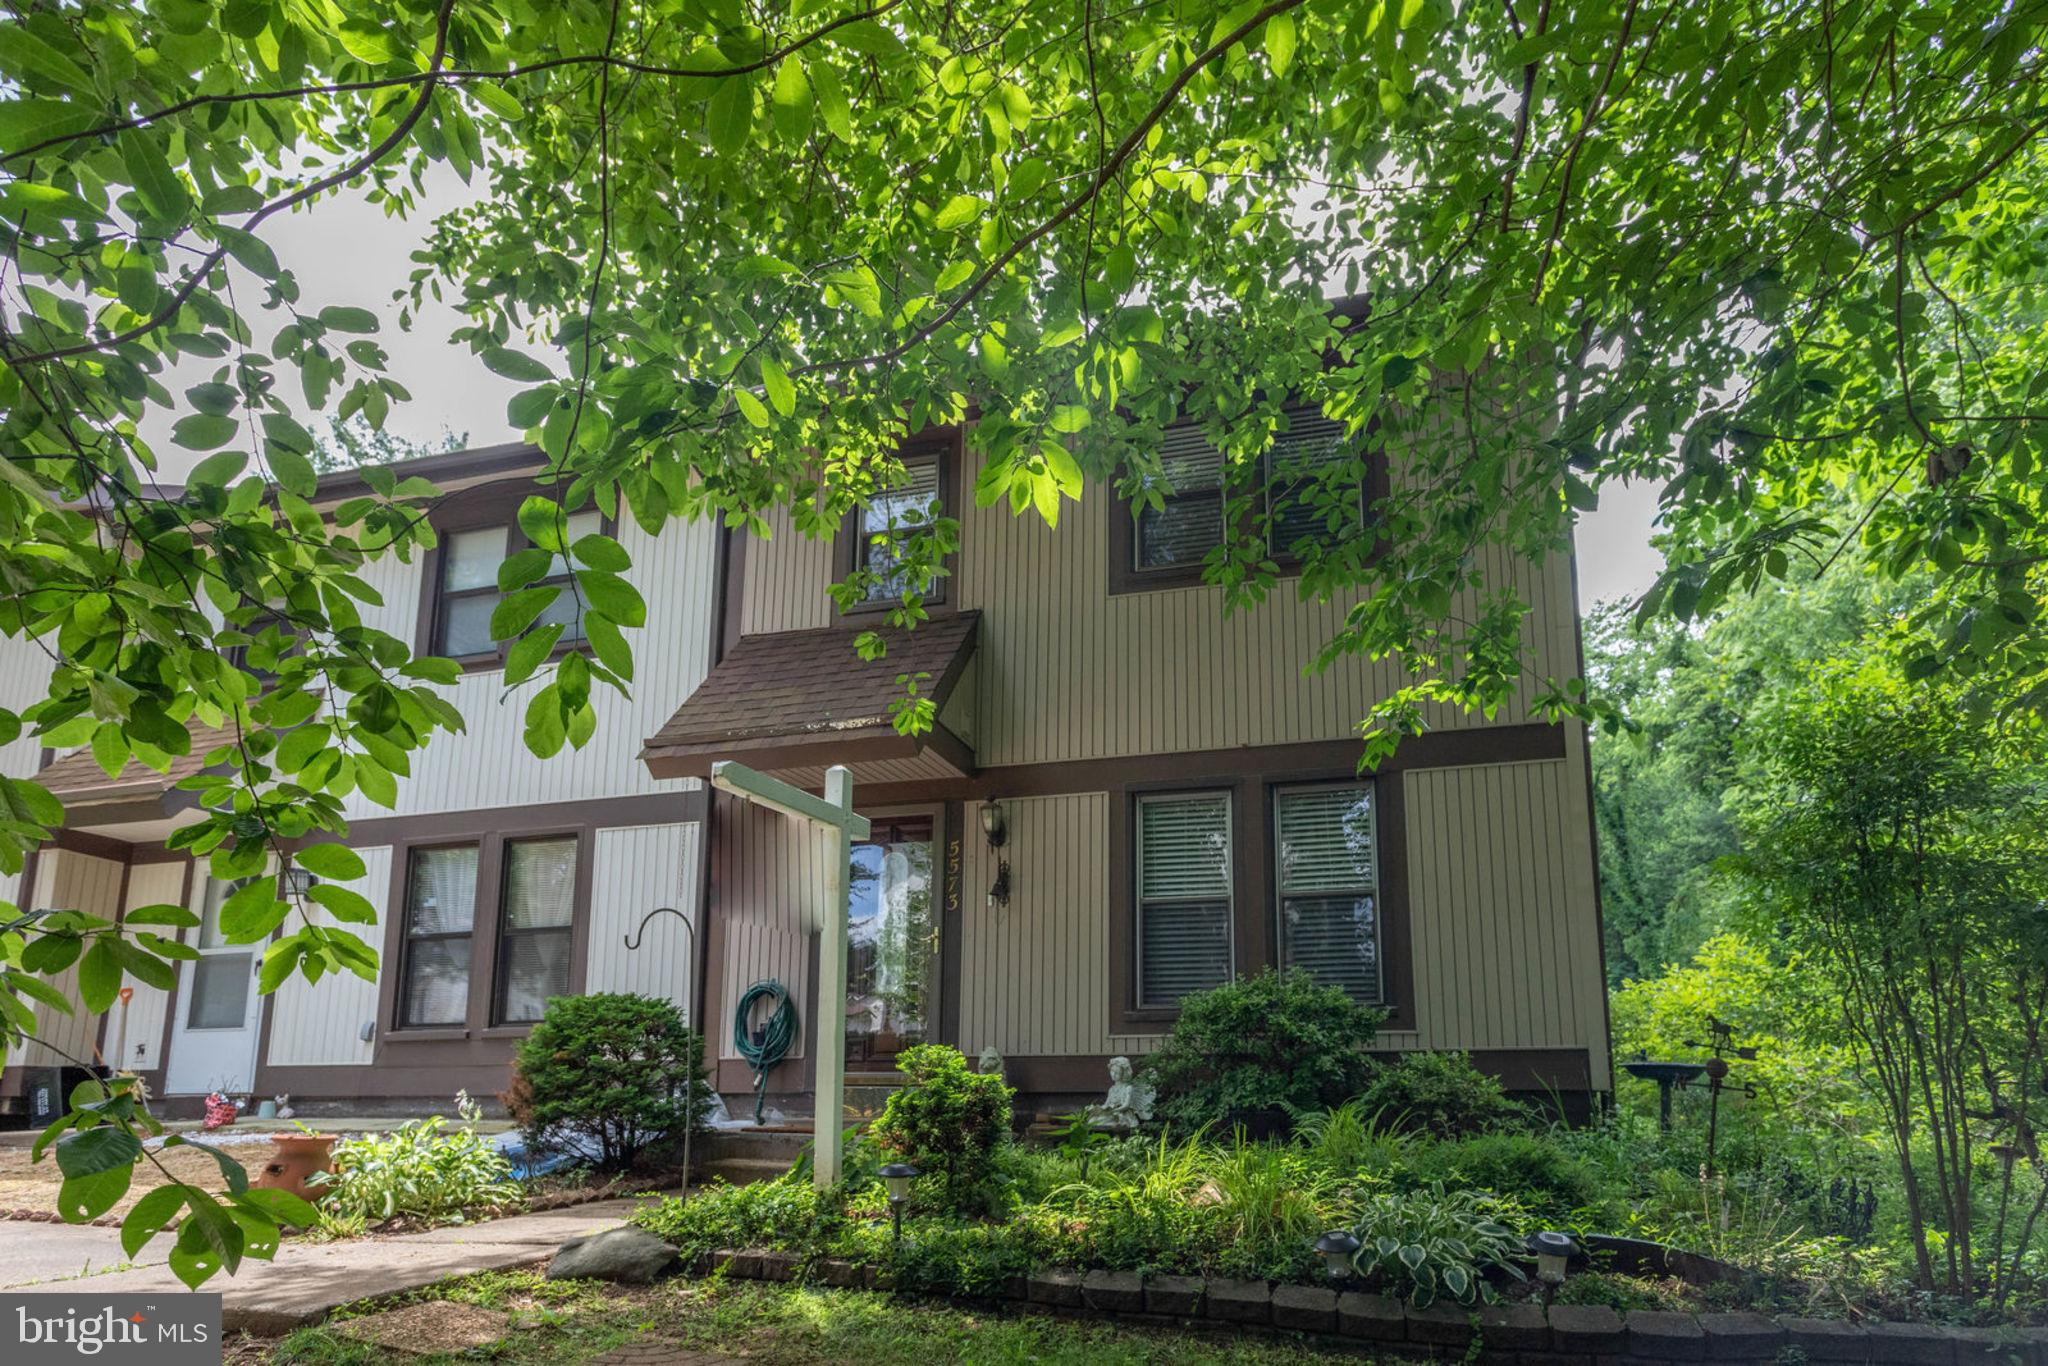 Lovely, 3 bed, 2 full and 1 half bath end unit townhome in the coveted Greenfield Farm community.Largest composite deck in neighborhood installed in 2015 backs to woods & open space and amazing privacy and personal oasis.Tons of upgrades in 2018 including a new roof, upstairs  HDWD floors, Dishwasher, Refrigerator and Stove, Washer/Dryer, and upstairs bathrooms renovated.AC/Furnace and large waterheater replaced in 2016.Brand new laminate floors in basement in 2019.Basement kitchen has electric stove top, sink, and hookup for refrigerator. With a den and full bath, and walk-out basement with rec room, this could be a nice in-law suite. Dining room wall removed, open floor concept, bar with granite countertop.Newly painted throughout!Parking Spot # - 104 with two additional passes for common/shared parking and plenty of street parking available.Owner maintained for almost 20 years, not rented.Close to VRE, 495, & FX county Pkwy. Walk to lake, dog park, and tot lots.